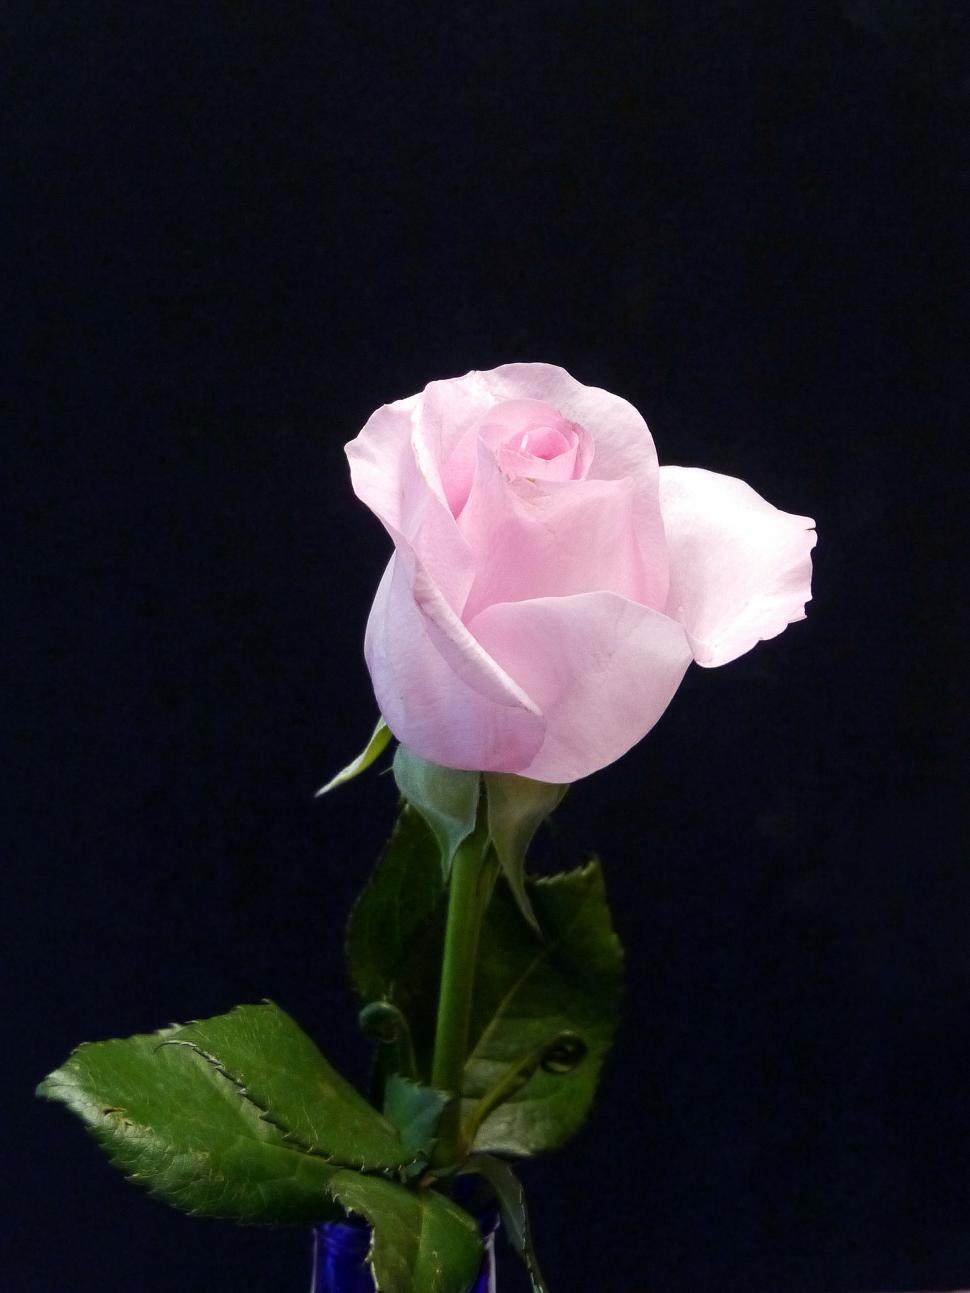 Download Free Stock HD Photo of Pink Rose - Small Bud Online